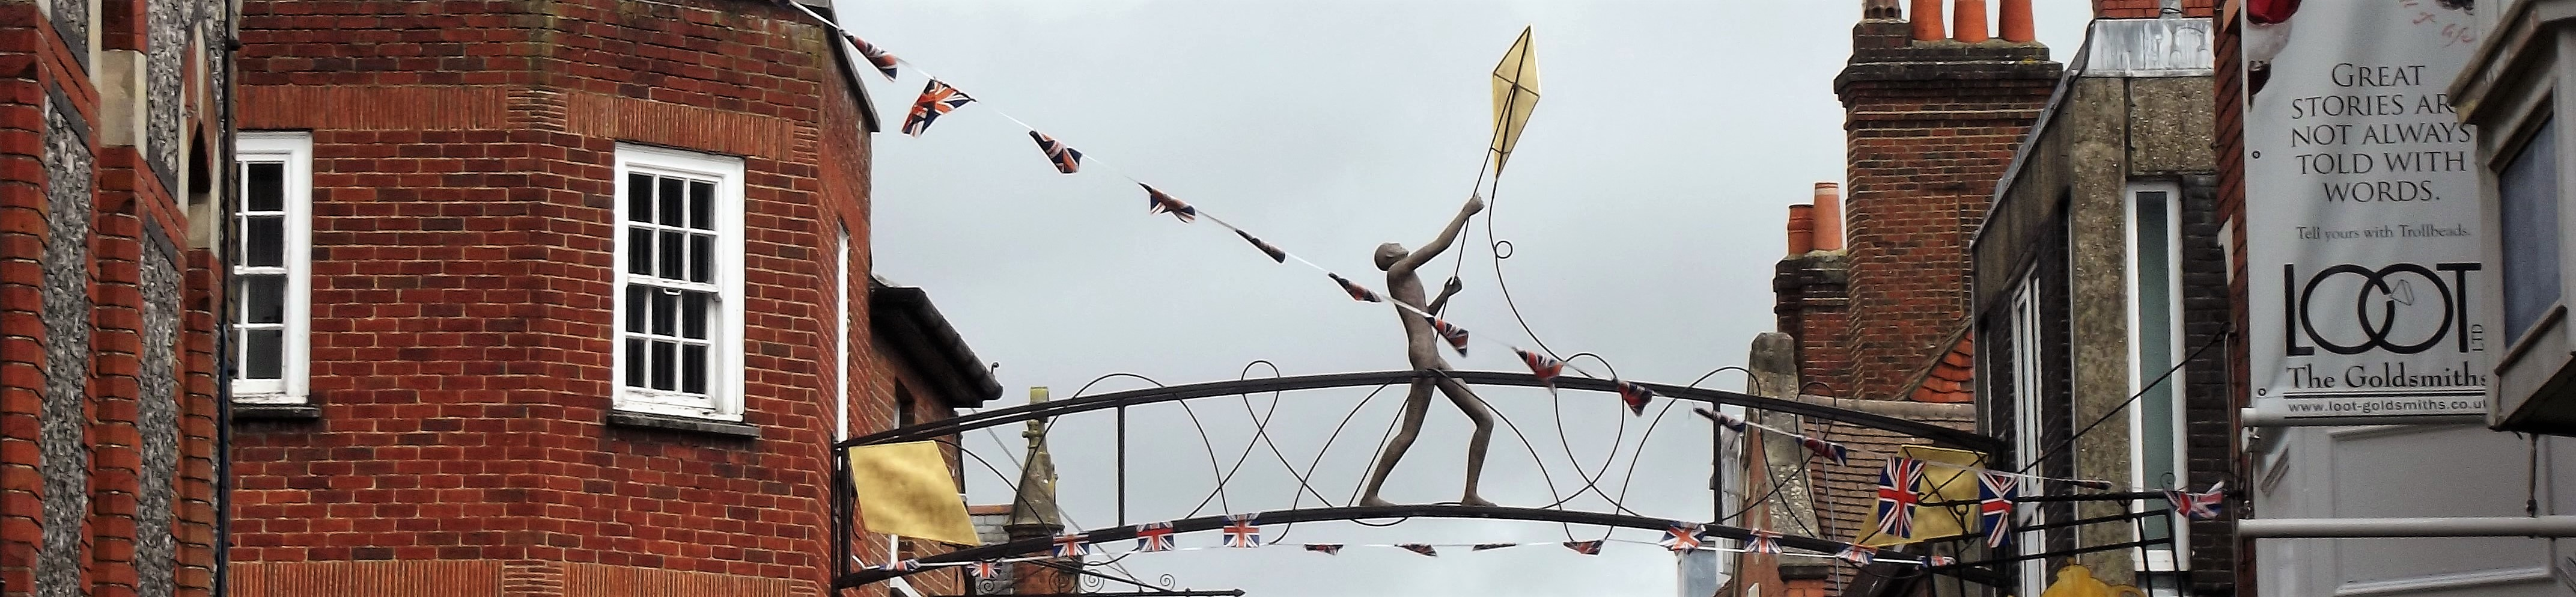 Winchester's Parchment Street is home to the city's famous landmark, the Kite Flyer, created by sculptor Marzia Colonna which stands nearly nearly six metres high.